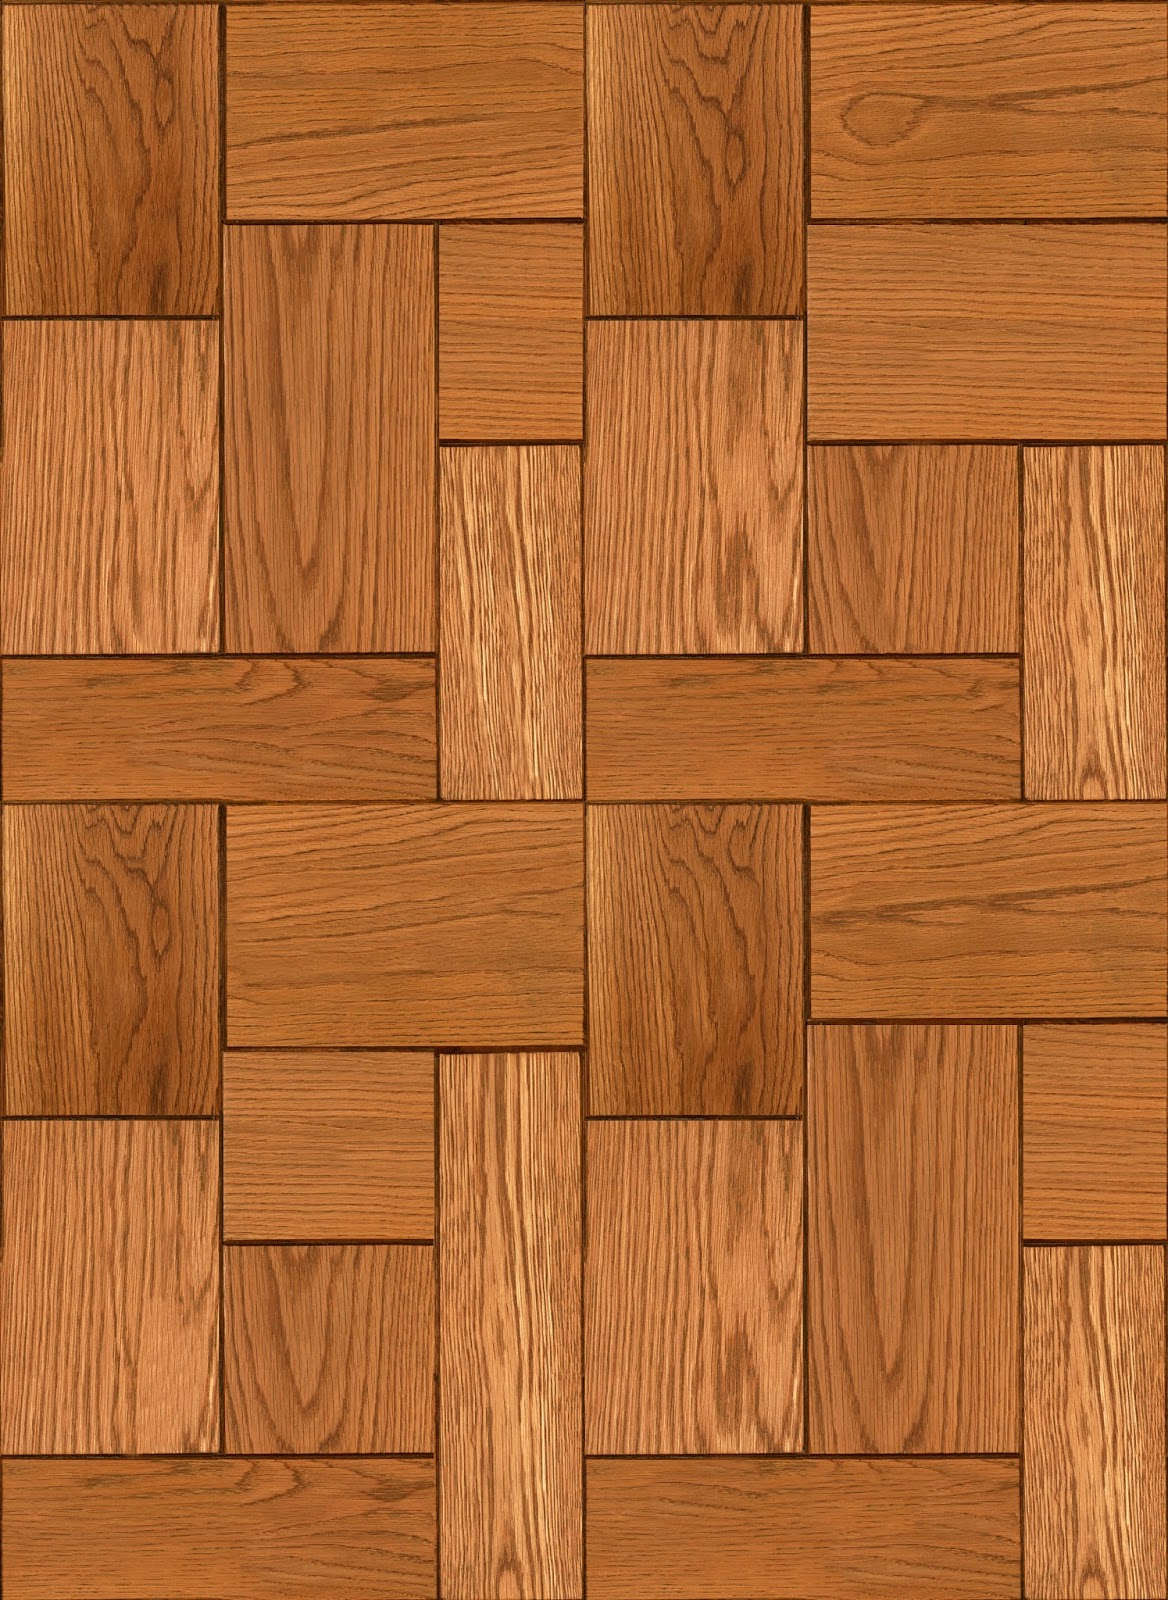 tileable wood parquet texture maps texturise free seamless textures with maps. Black Bedroom Furniture Sets. Home Design Ideas